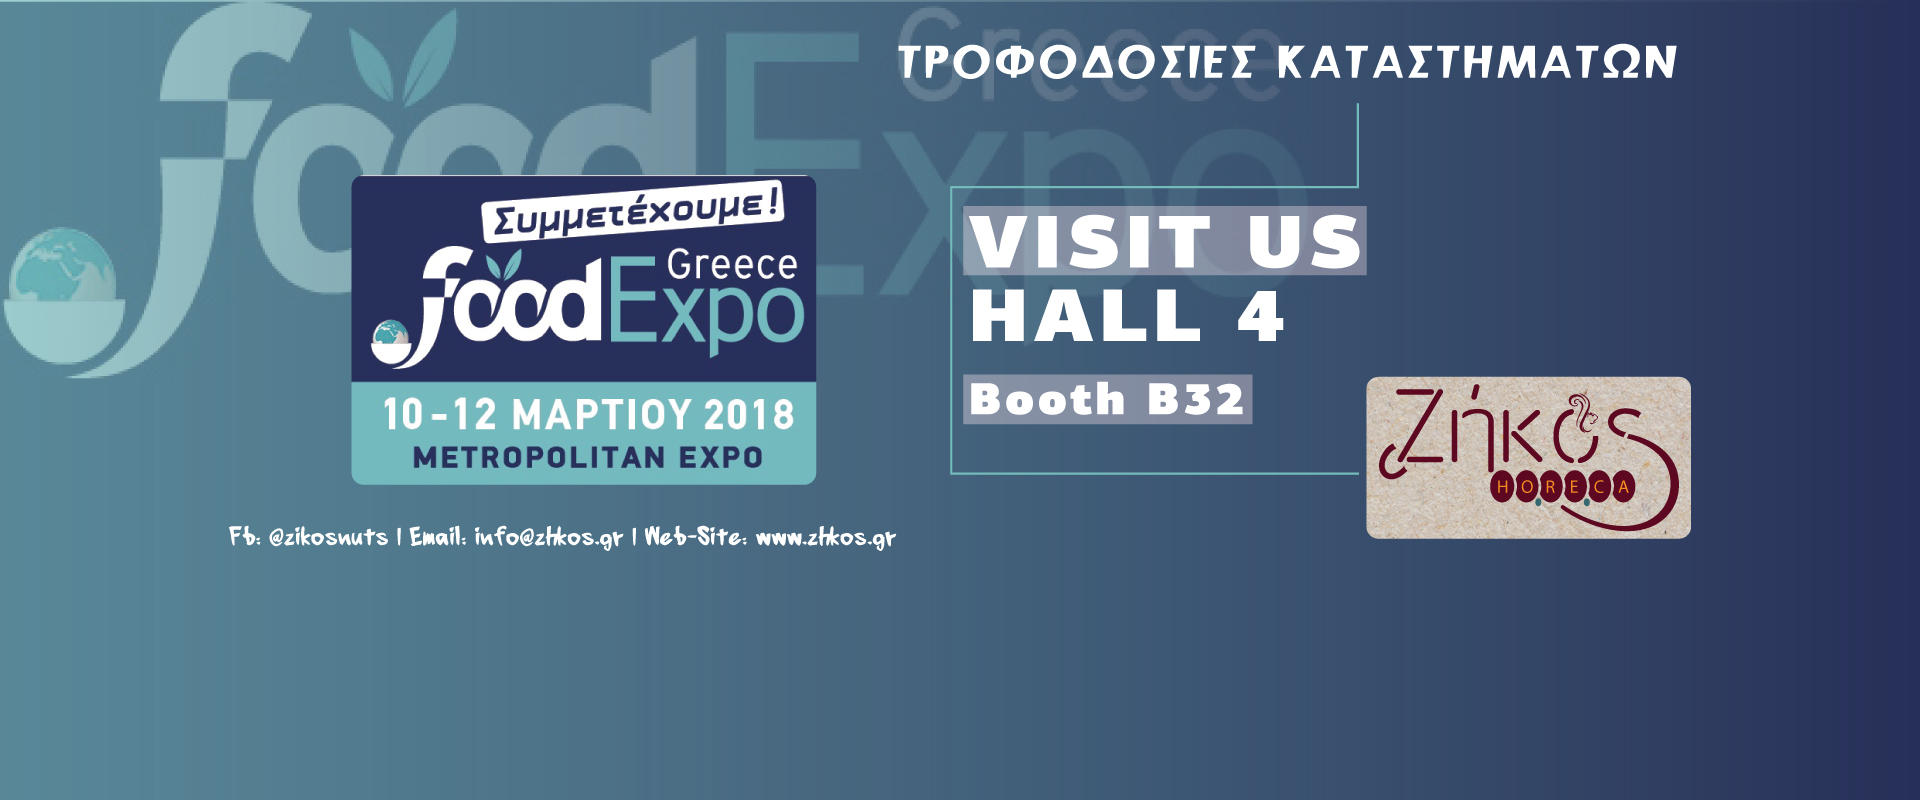 ΖΗΚΟΣ HORECA – FOOD EXPO 2018